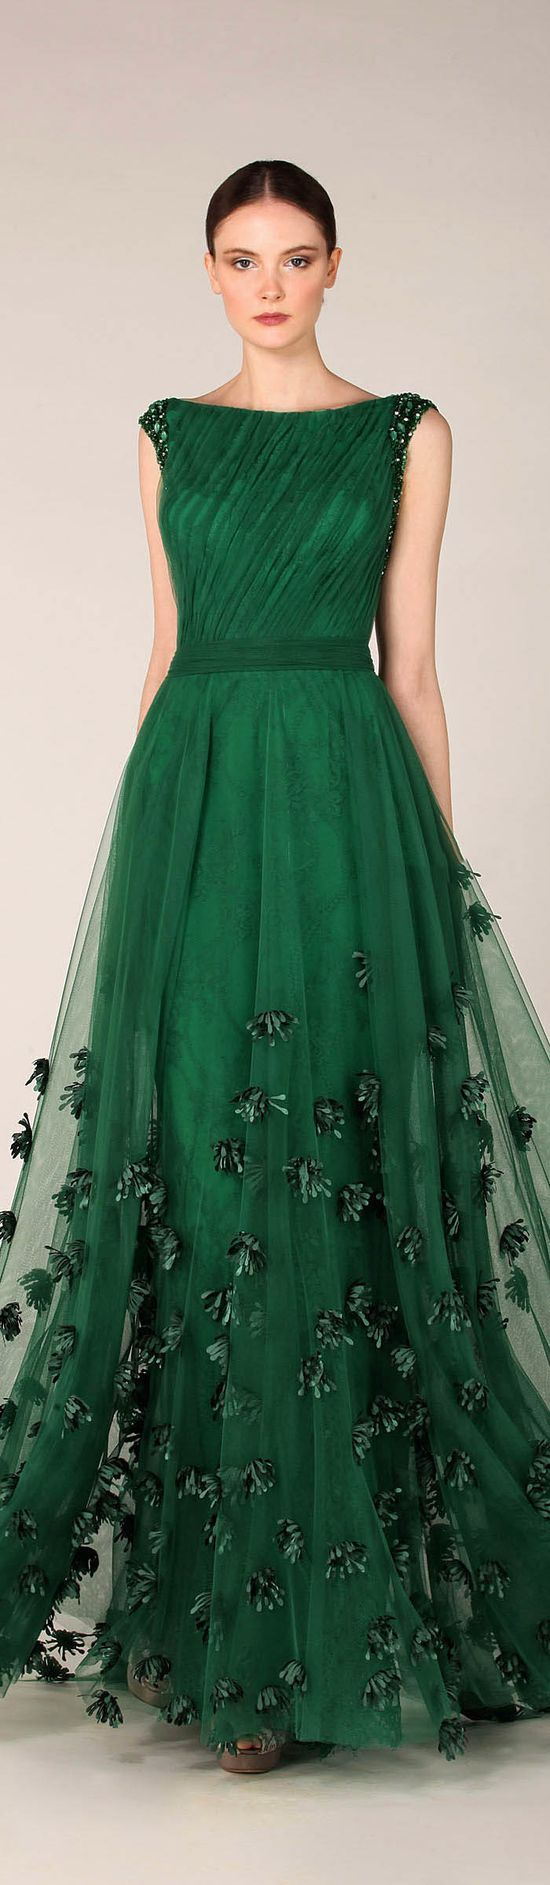 best images about flores on pinterest resorts green and marchesa